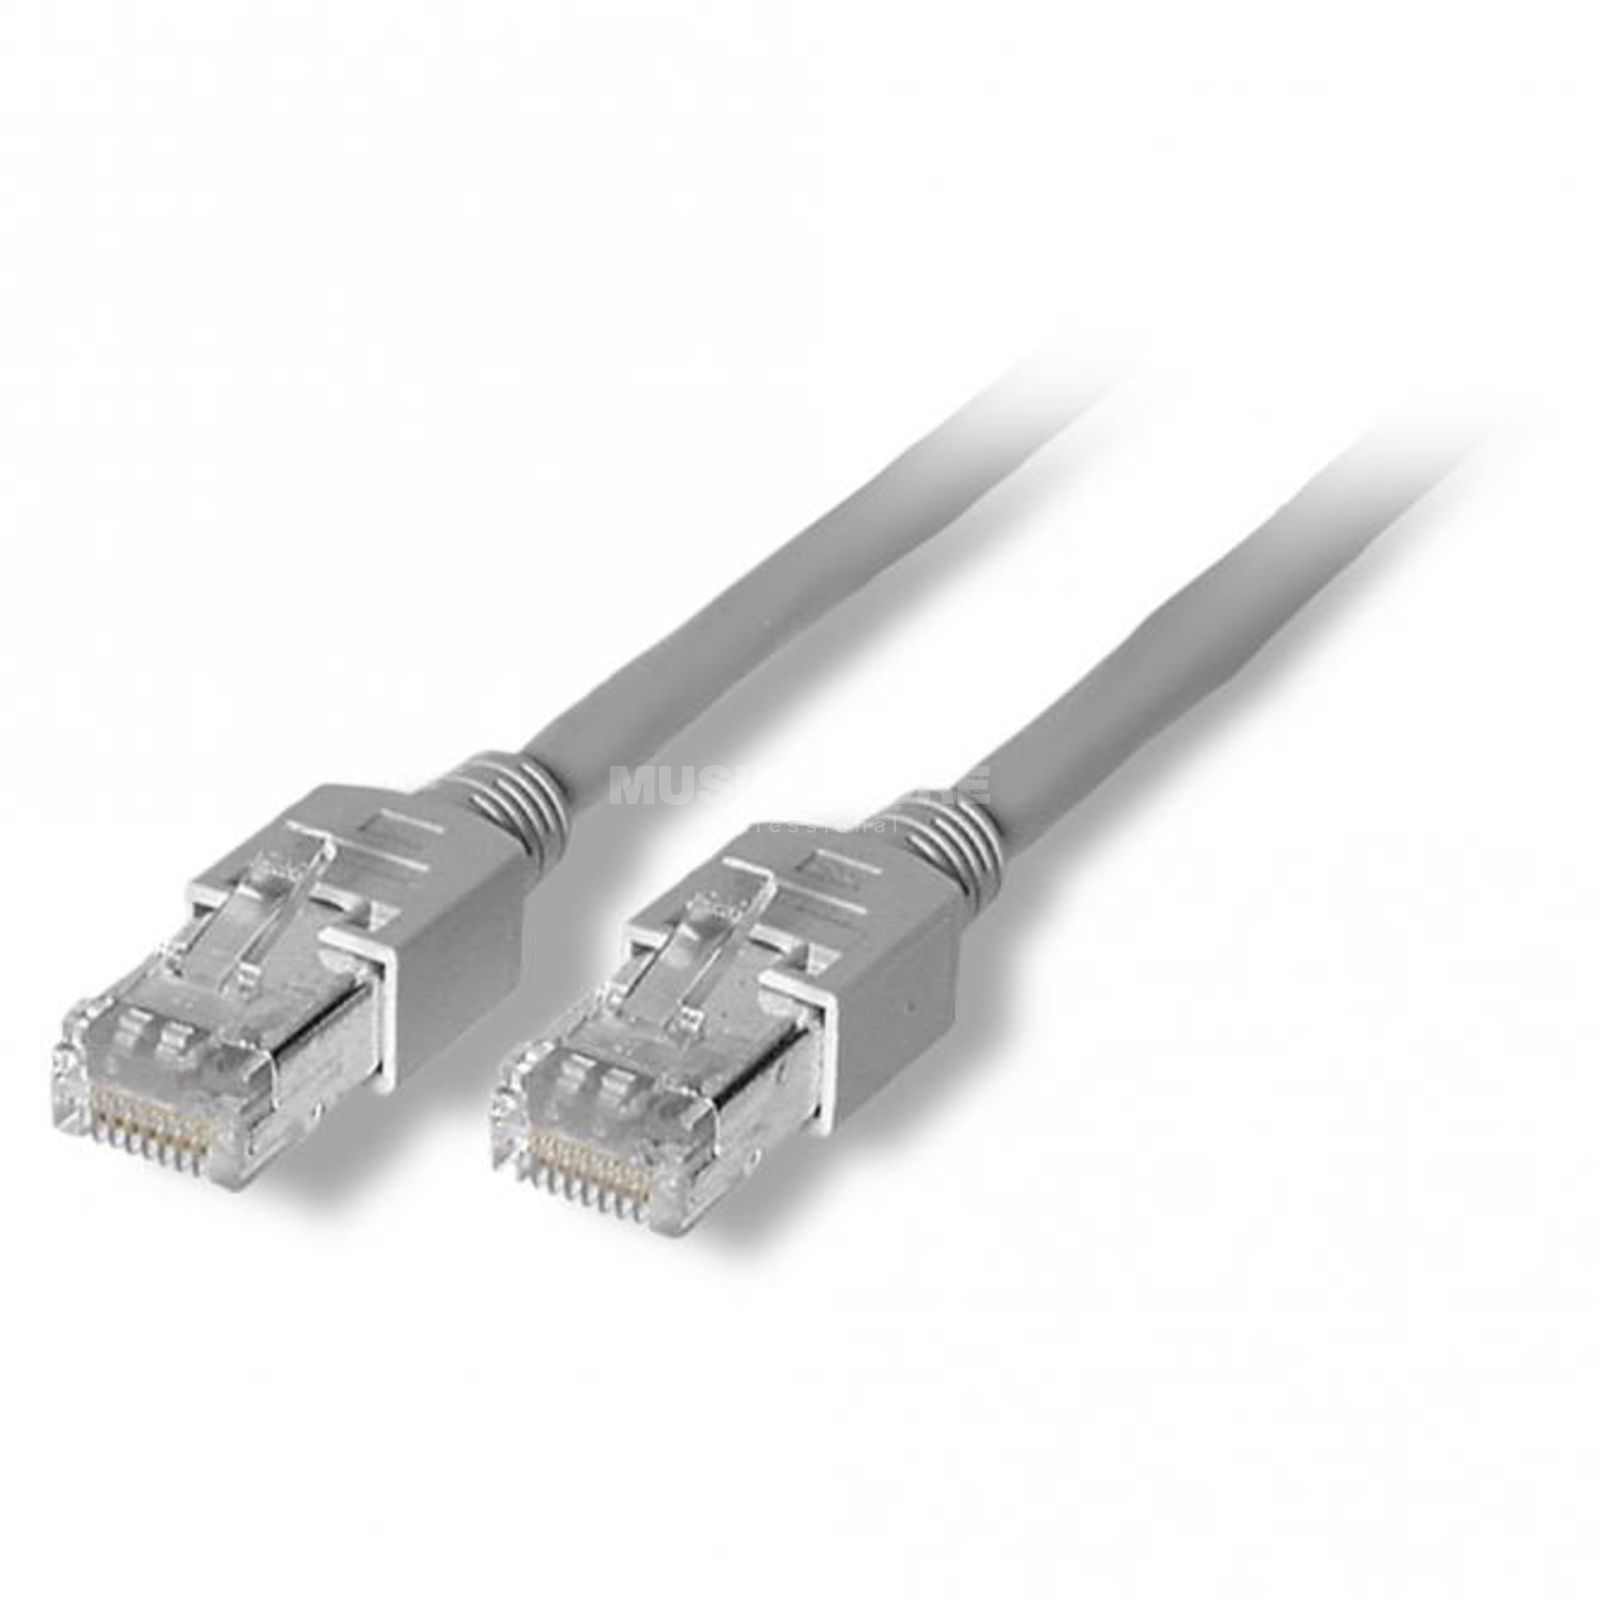 Sommer Cable CAT 5 FTP 30m K5HS-3000-GR Product Image